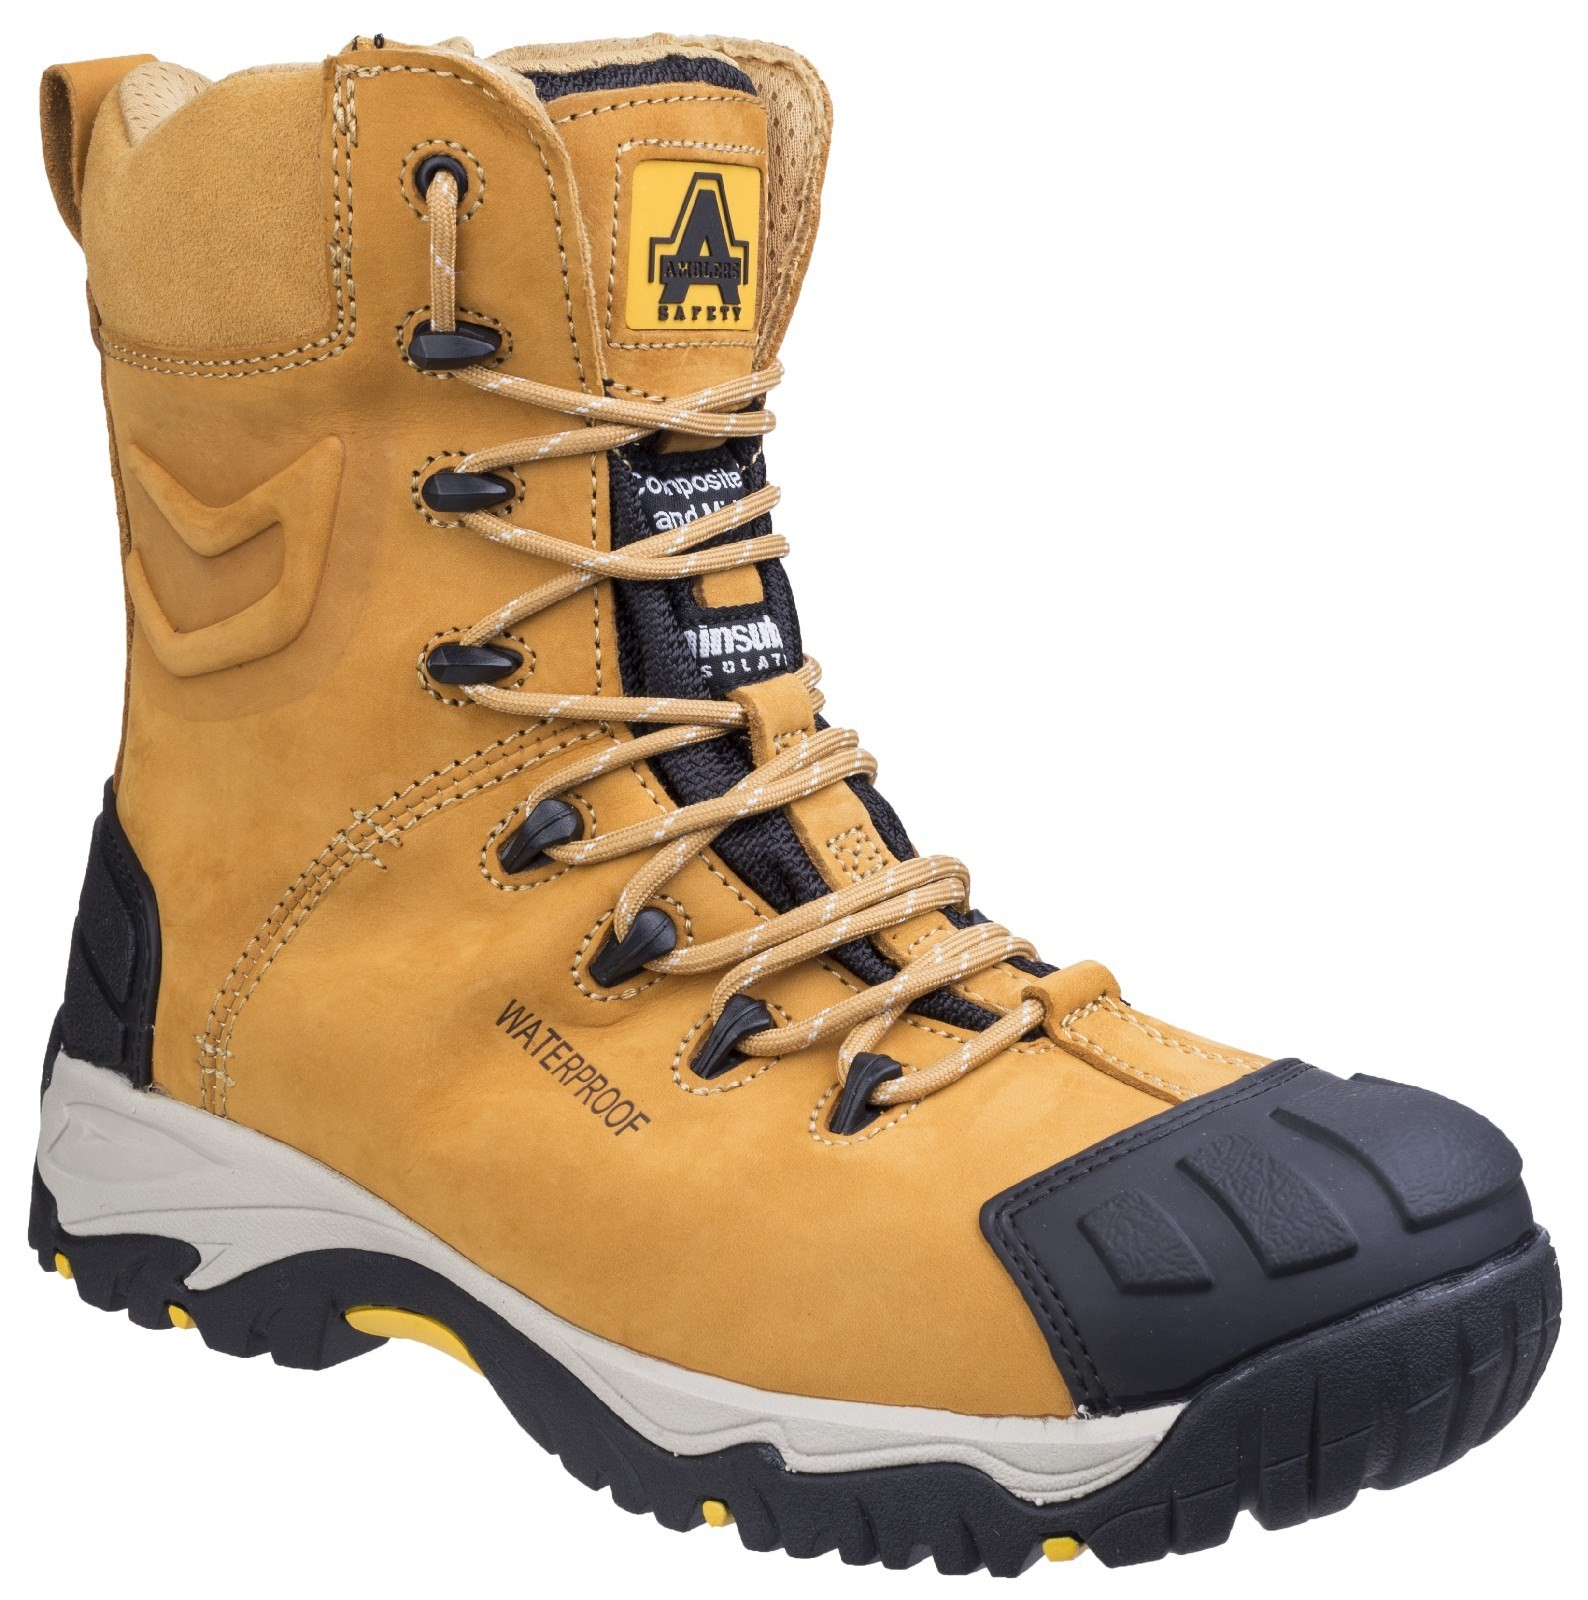 amblers safety boots for women